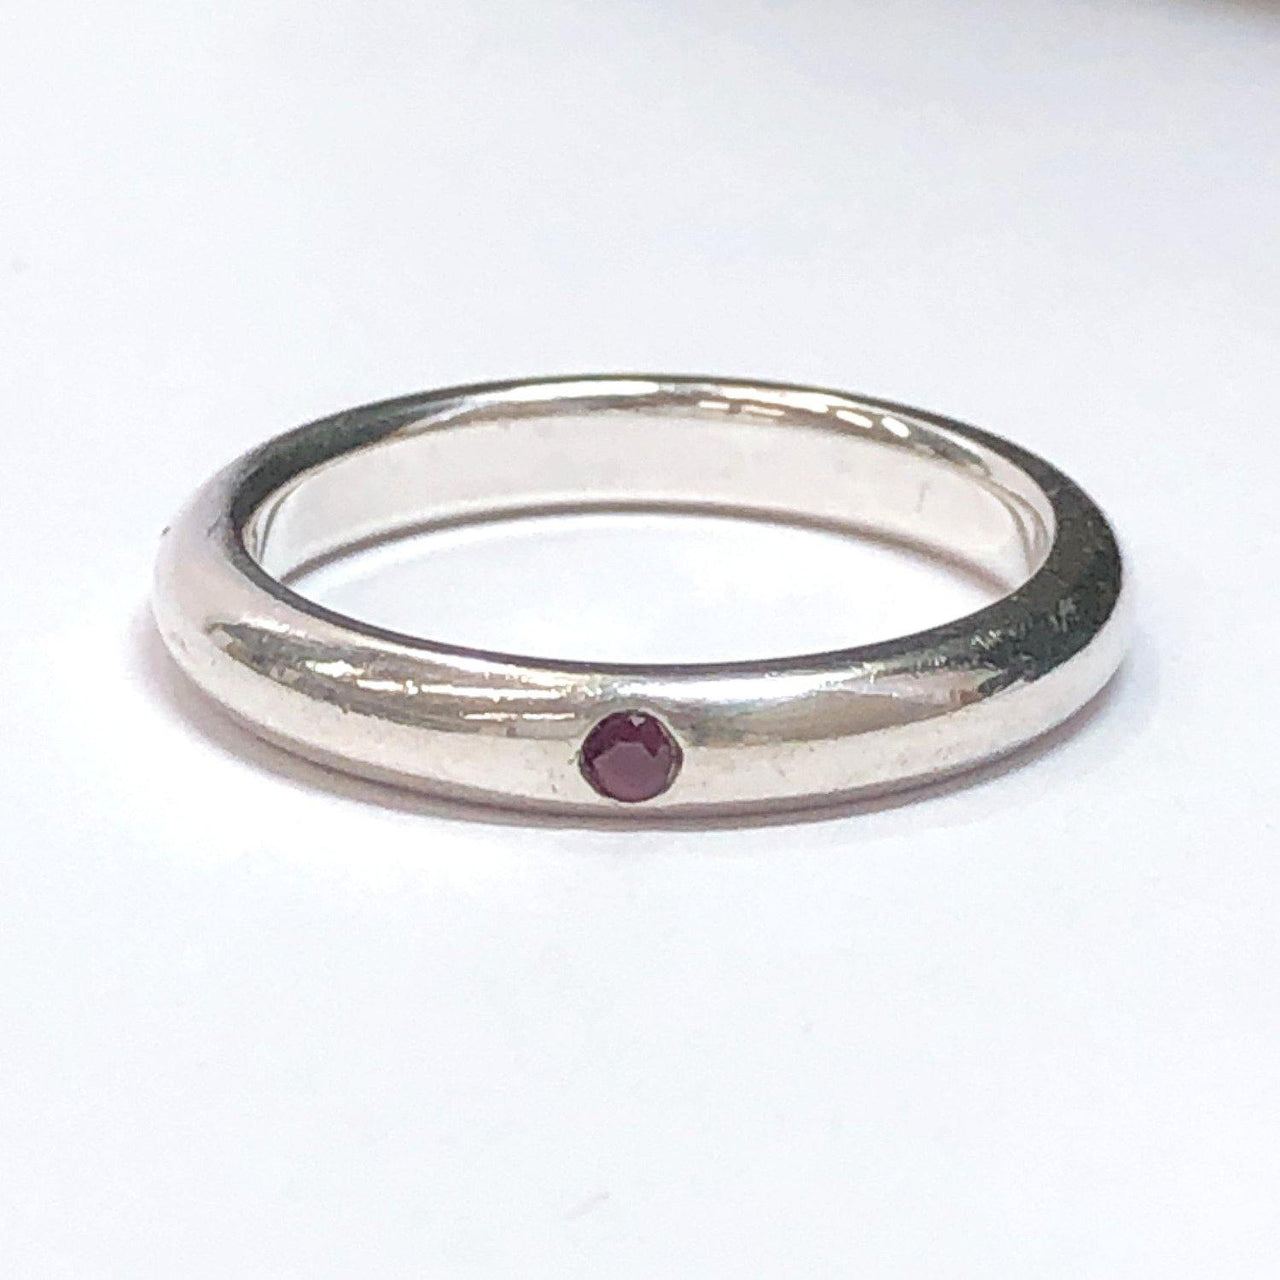 TIFFANY&Co. Ring El Saperetti Stacking band Silver925/Ruby C Silver Women Used - JP-BRANDS.com